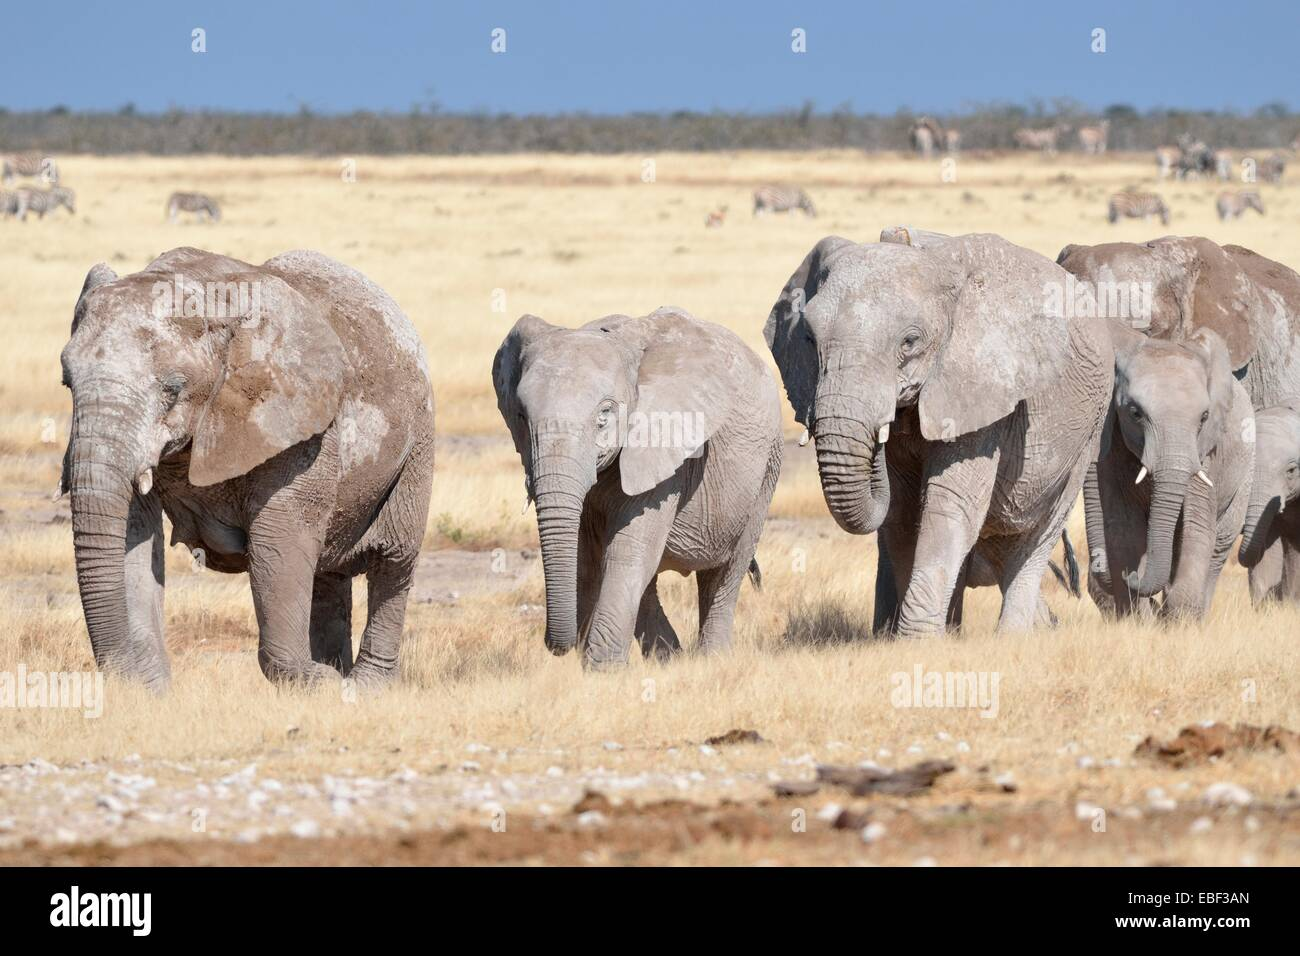 Herd of African elephants (Loxodonta africana), covered with mud, walking in dry grass, Etosha National Park, Namibia, Stock Photo